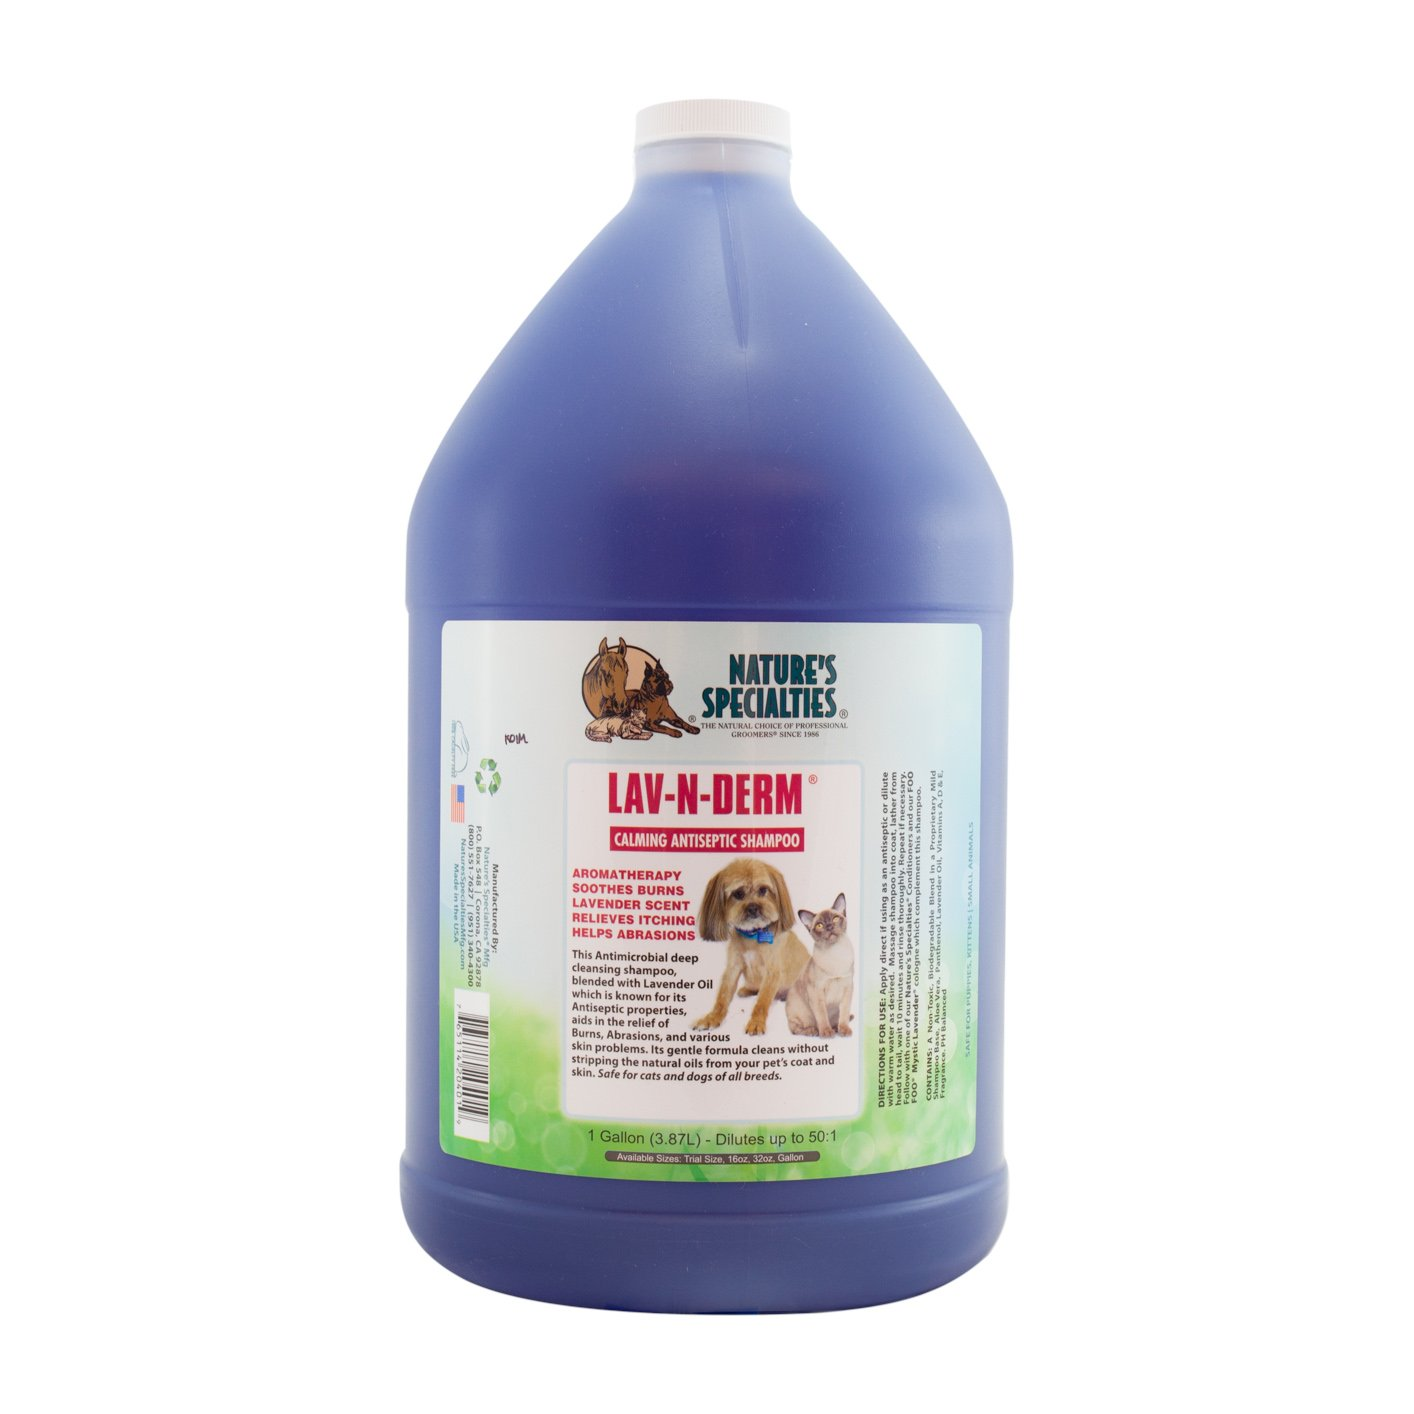 Nature's Specialties Lav-N-Derm Shampoo for Pets